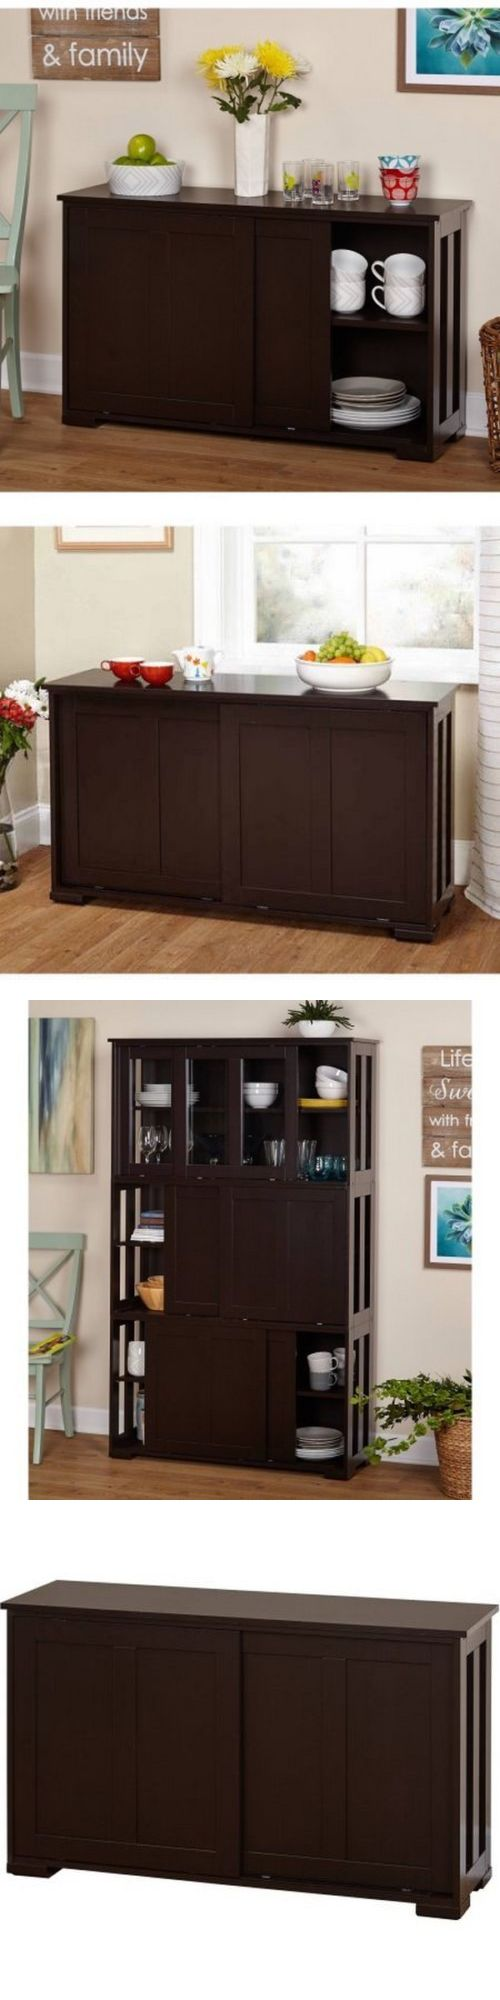 Sideboards and Buffets 183322: Sideboard Buffet Server Cabinet Table Furniture Espresso Stackable Storage Doors -> BUY IT NOW ONLY: $130.45 on eBay!